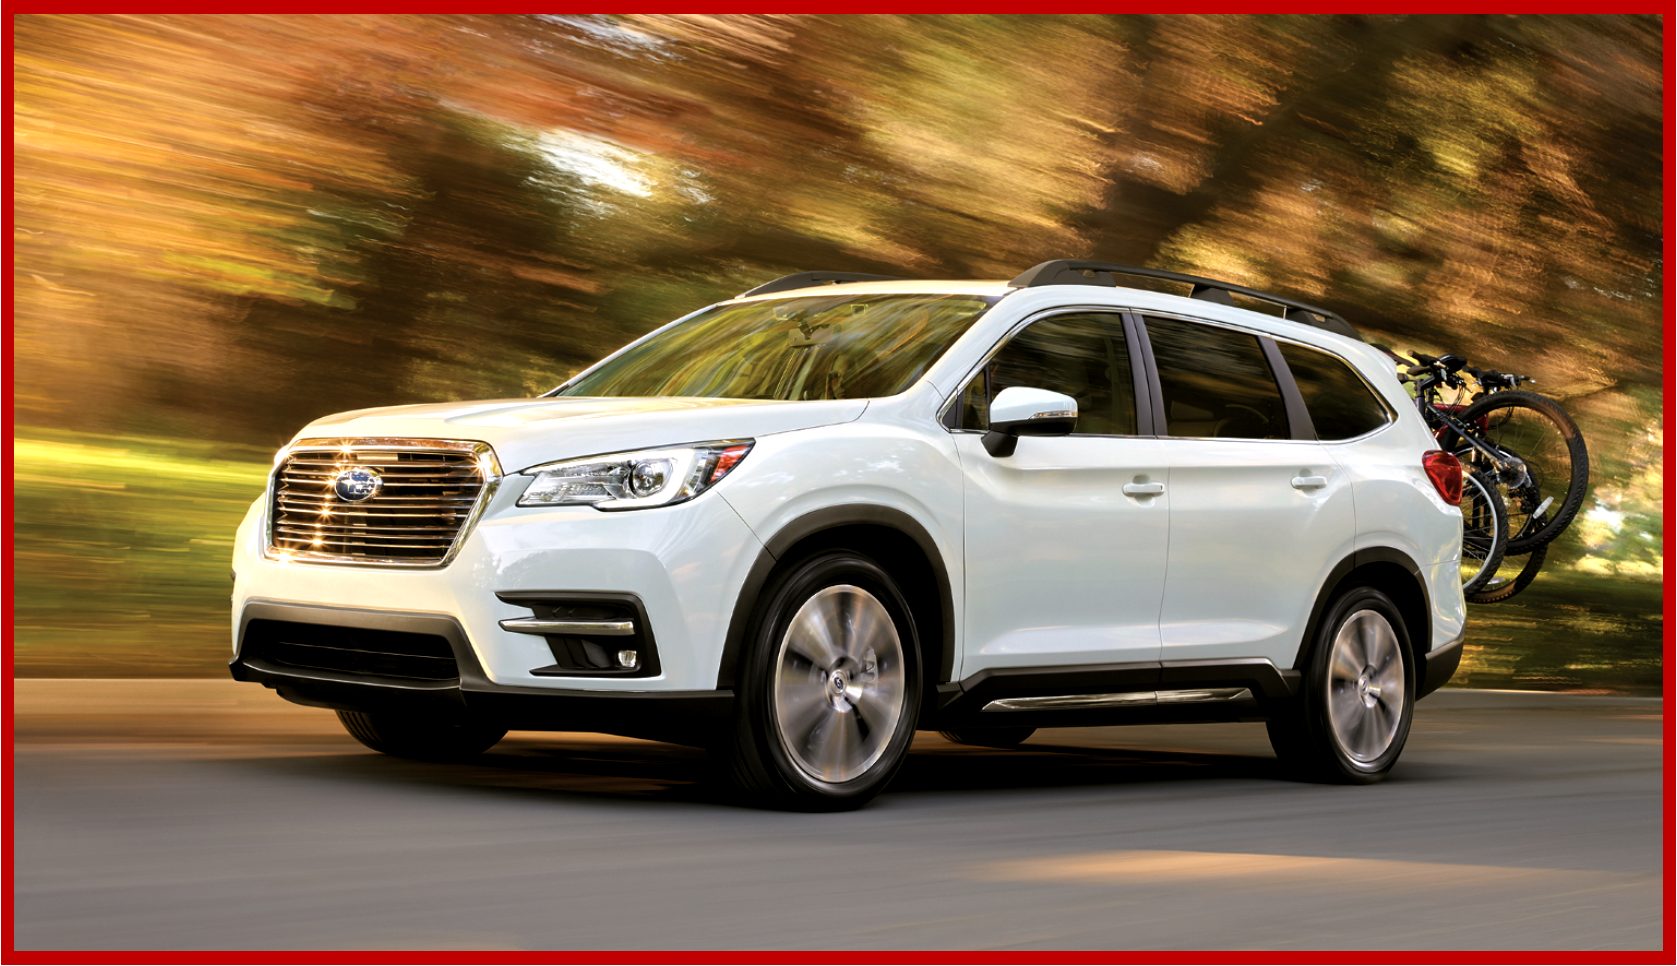 AutoInformed.com on Subaru Ascent